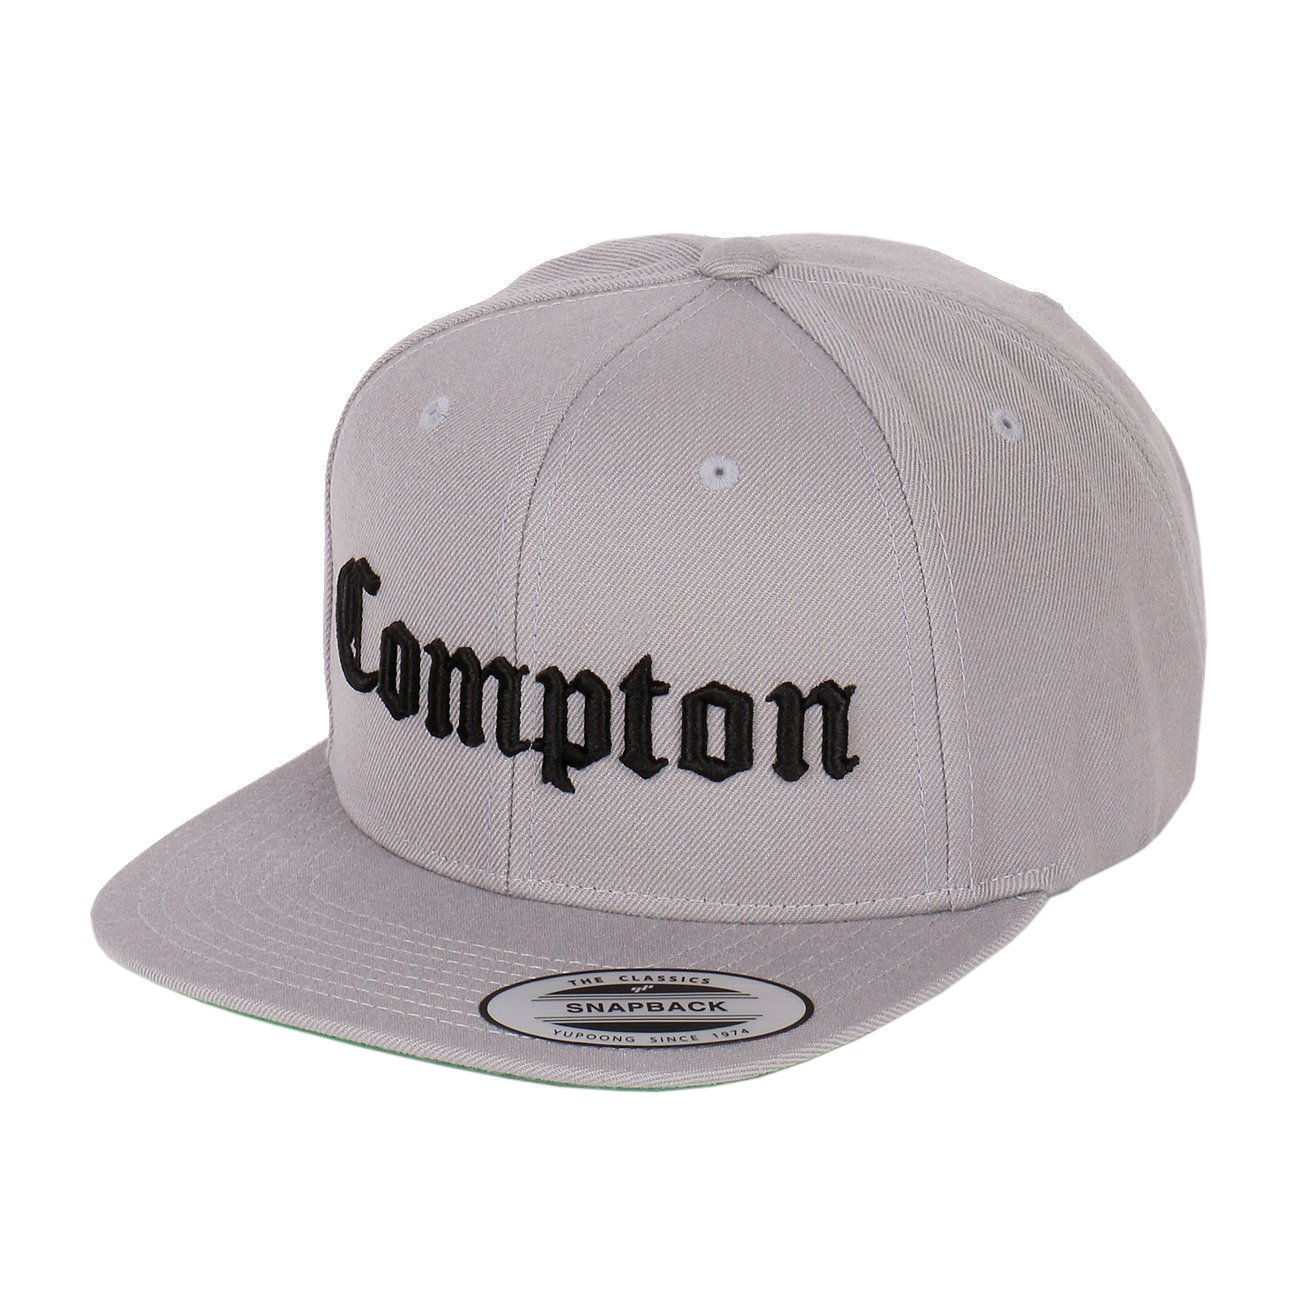 Compton Embroidery Flat Bill Adjustable Yupoong Cap by Flexfit (More  Colors) (Black) at Amazon Men s Clothing store  b44763f610ee